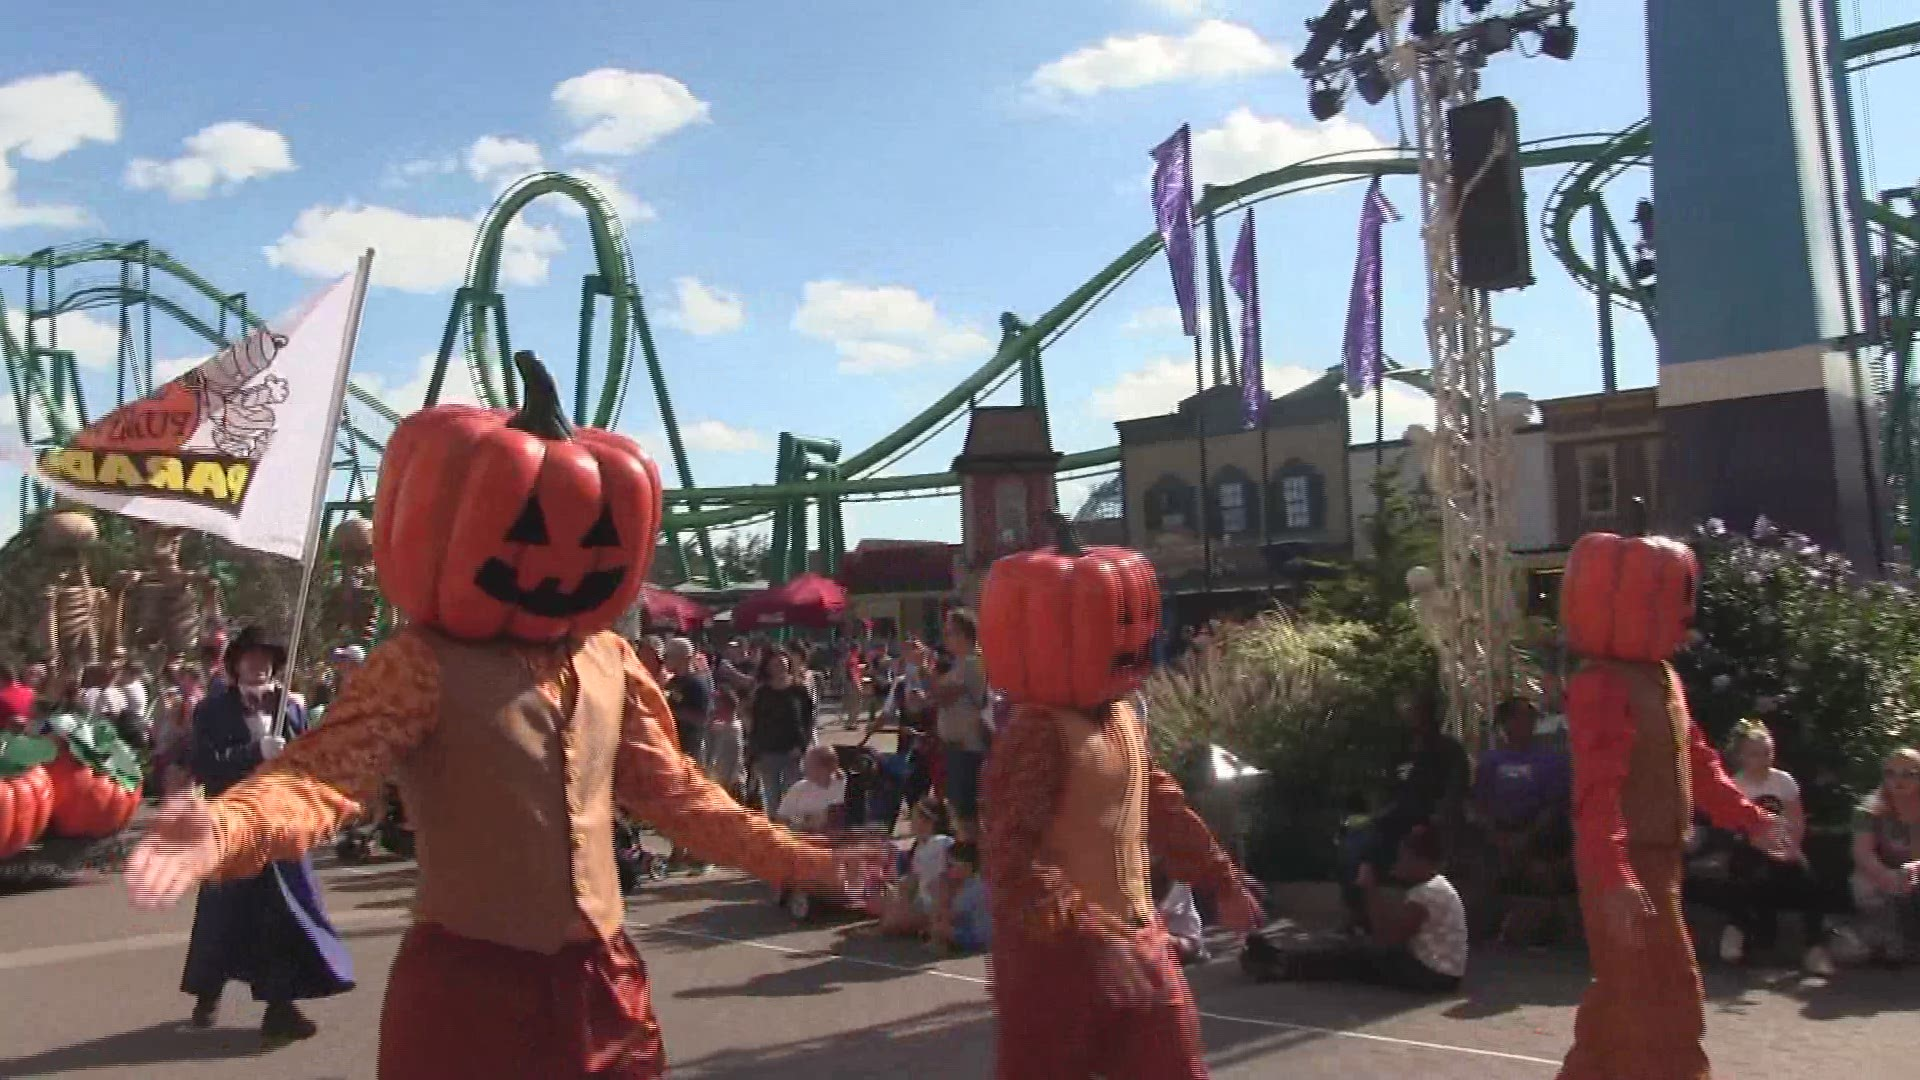 Oregon Halloween Events 2020 What is replacing HalloWeekends at Cedar Point? New event planned